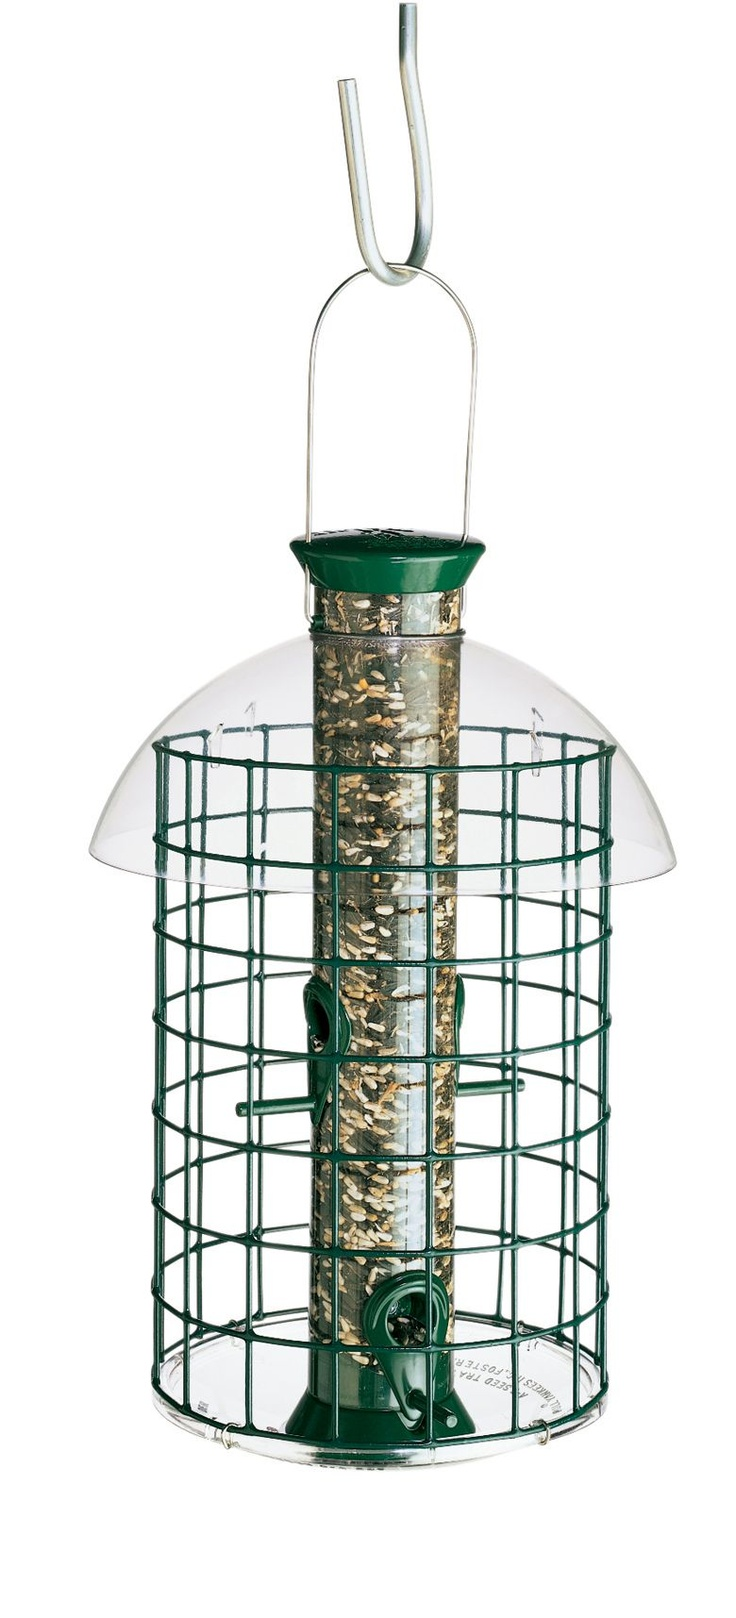 brome image feeder peanut ergonomic for squirrel wondrous feeders buster bird full proof